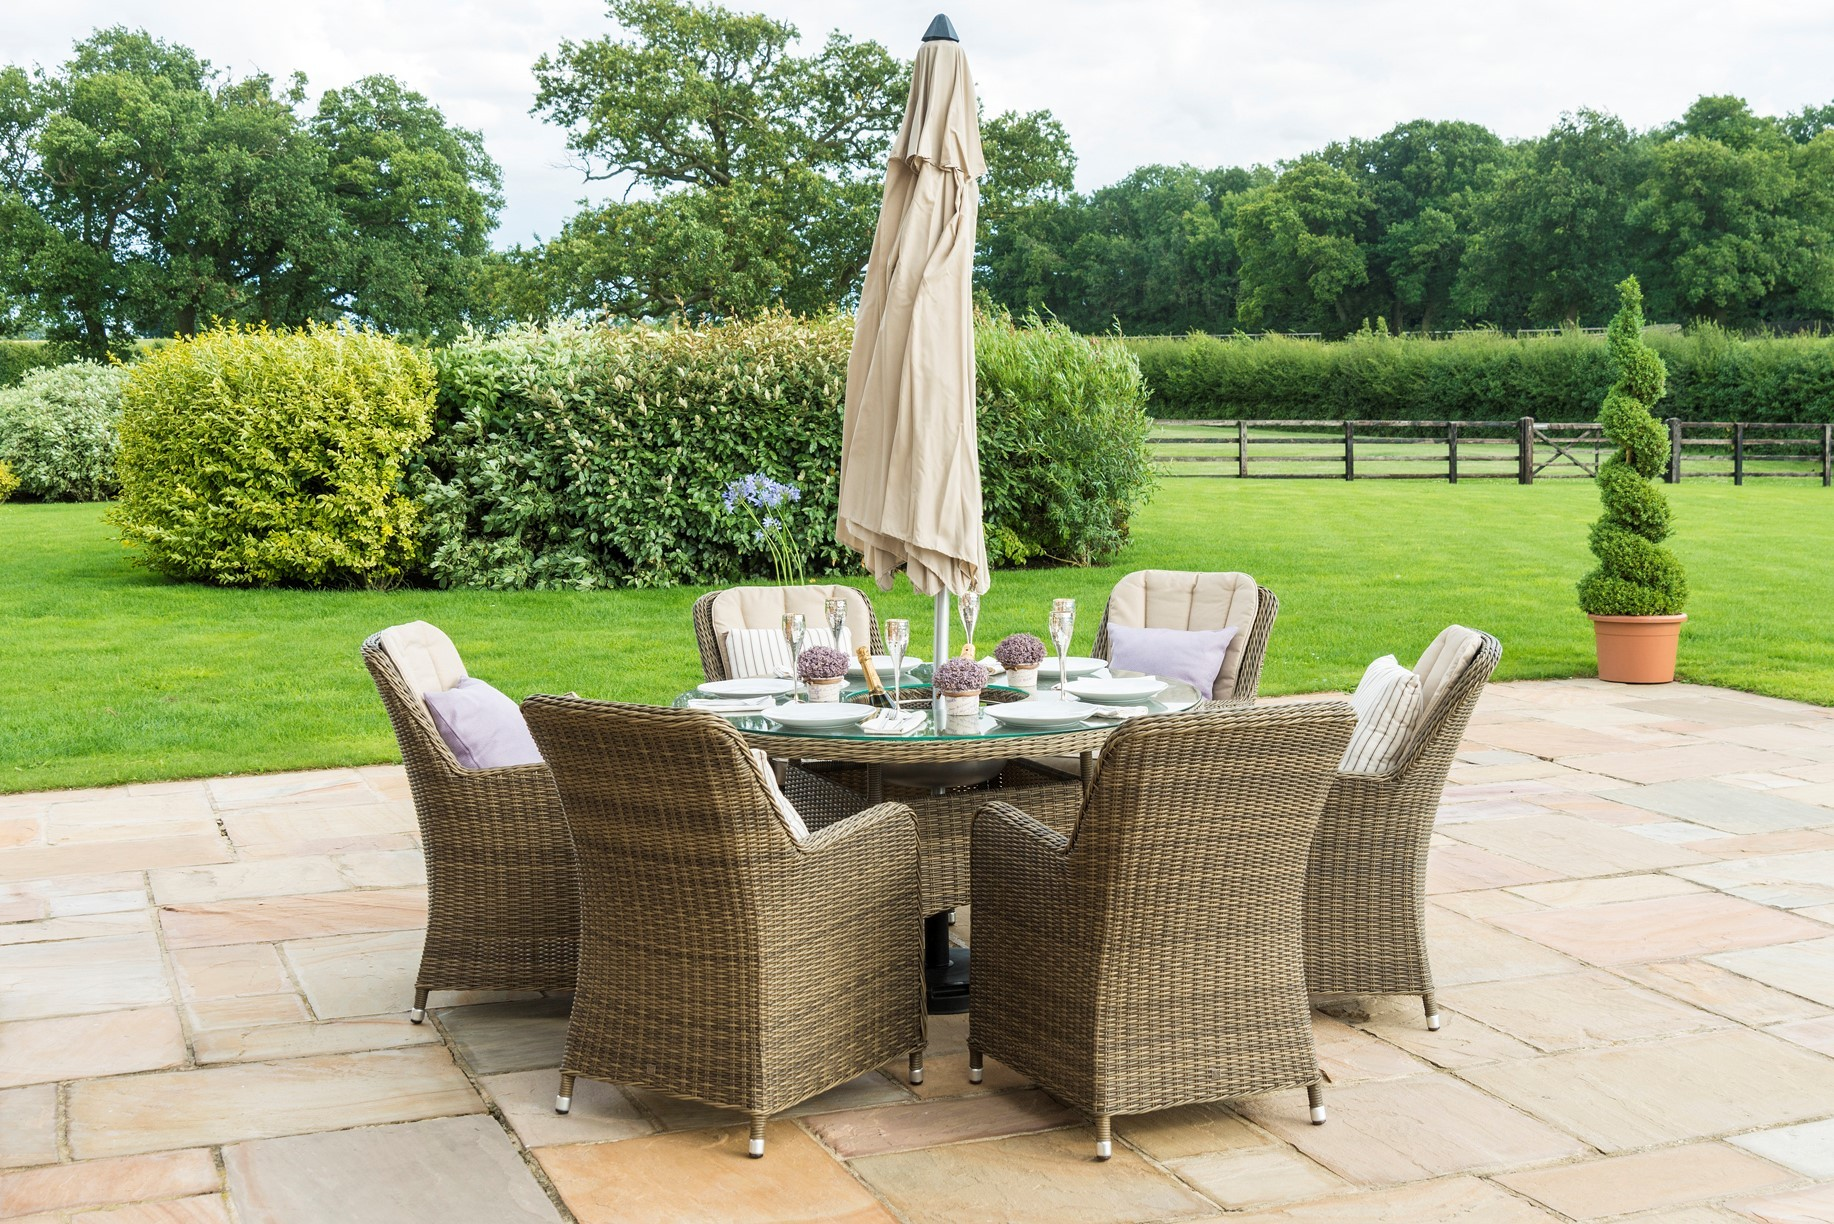 Winchester 6 seat Round Ice Bucket Dining Set With Venice Chairs And Lazy Susan